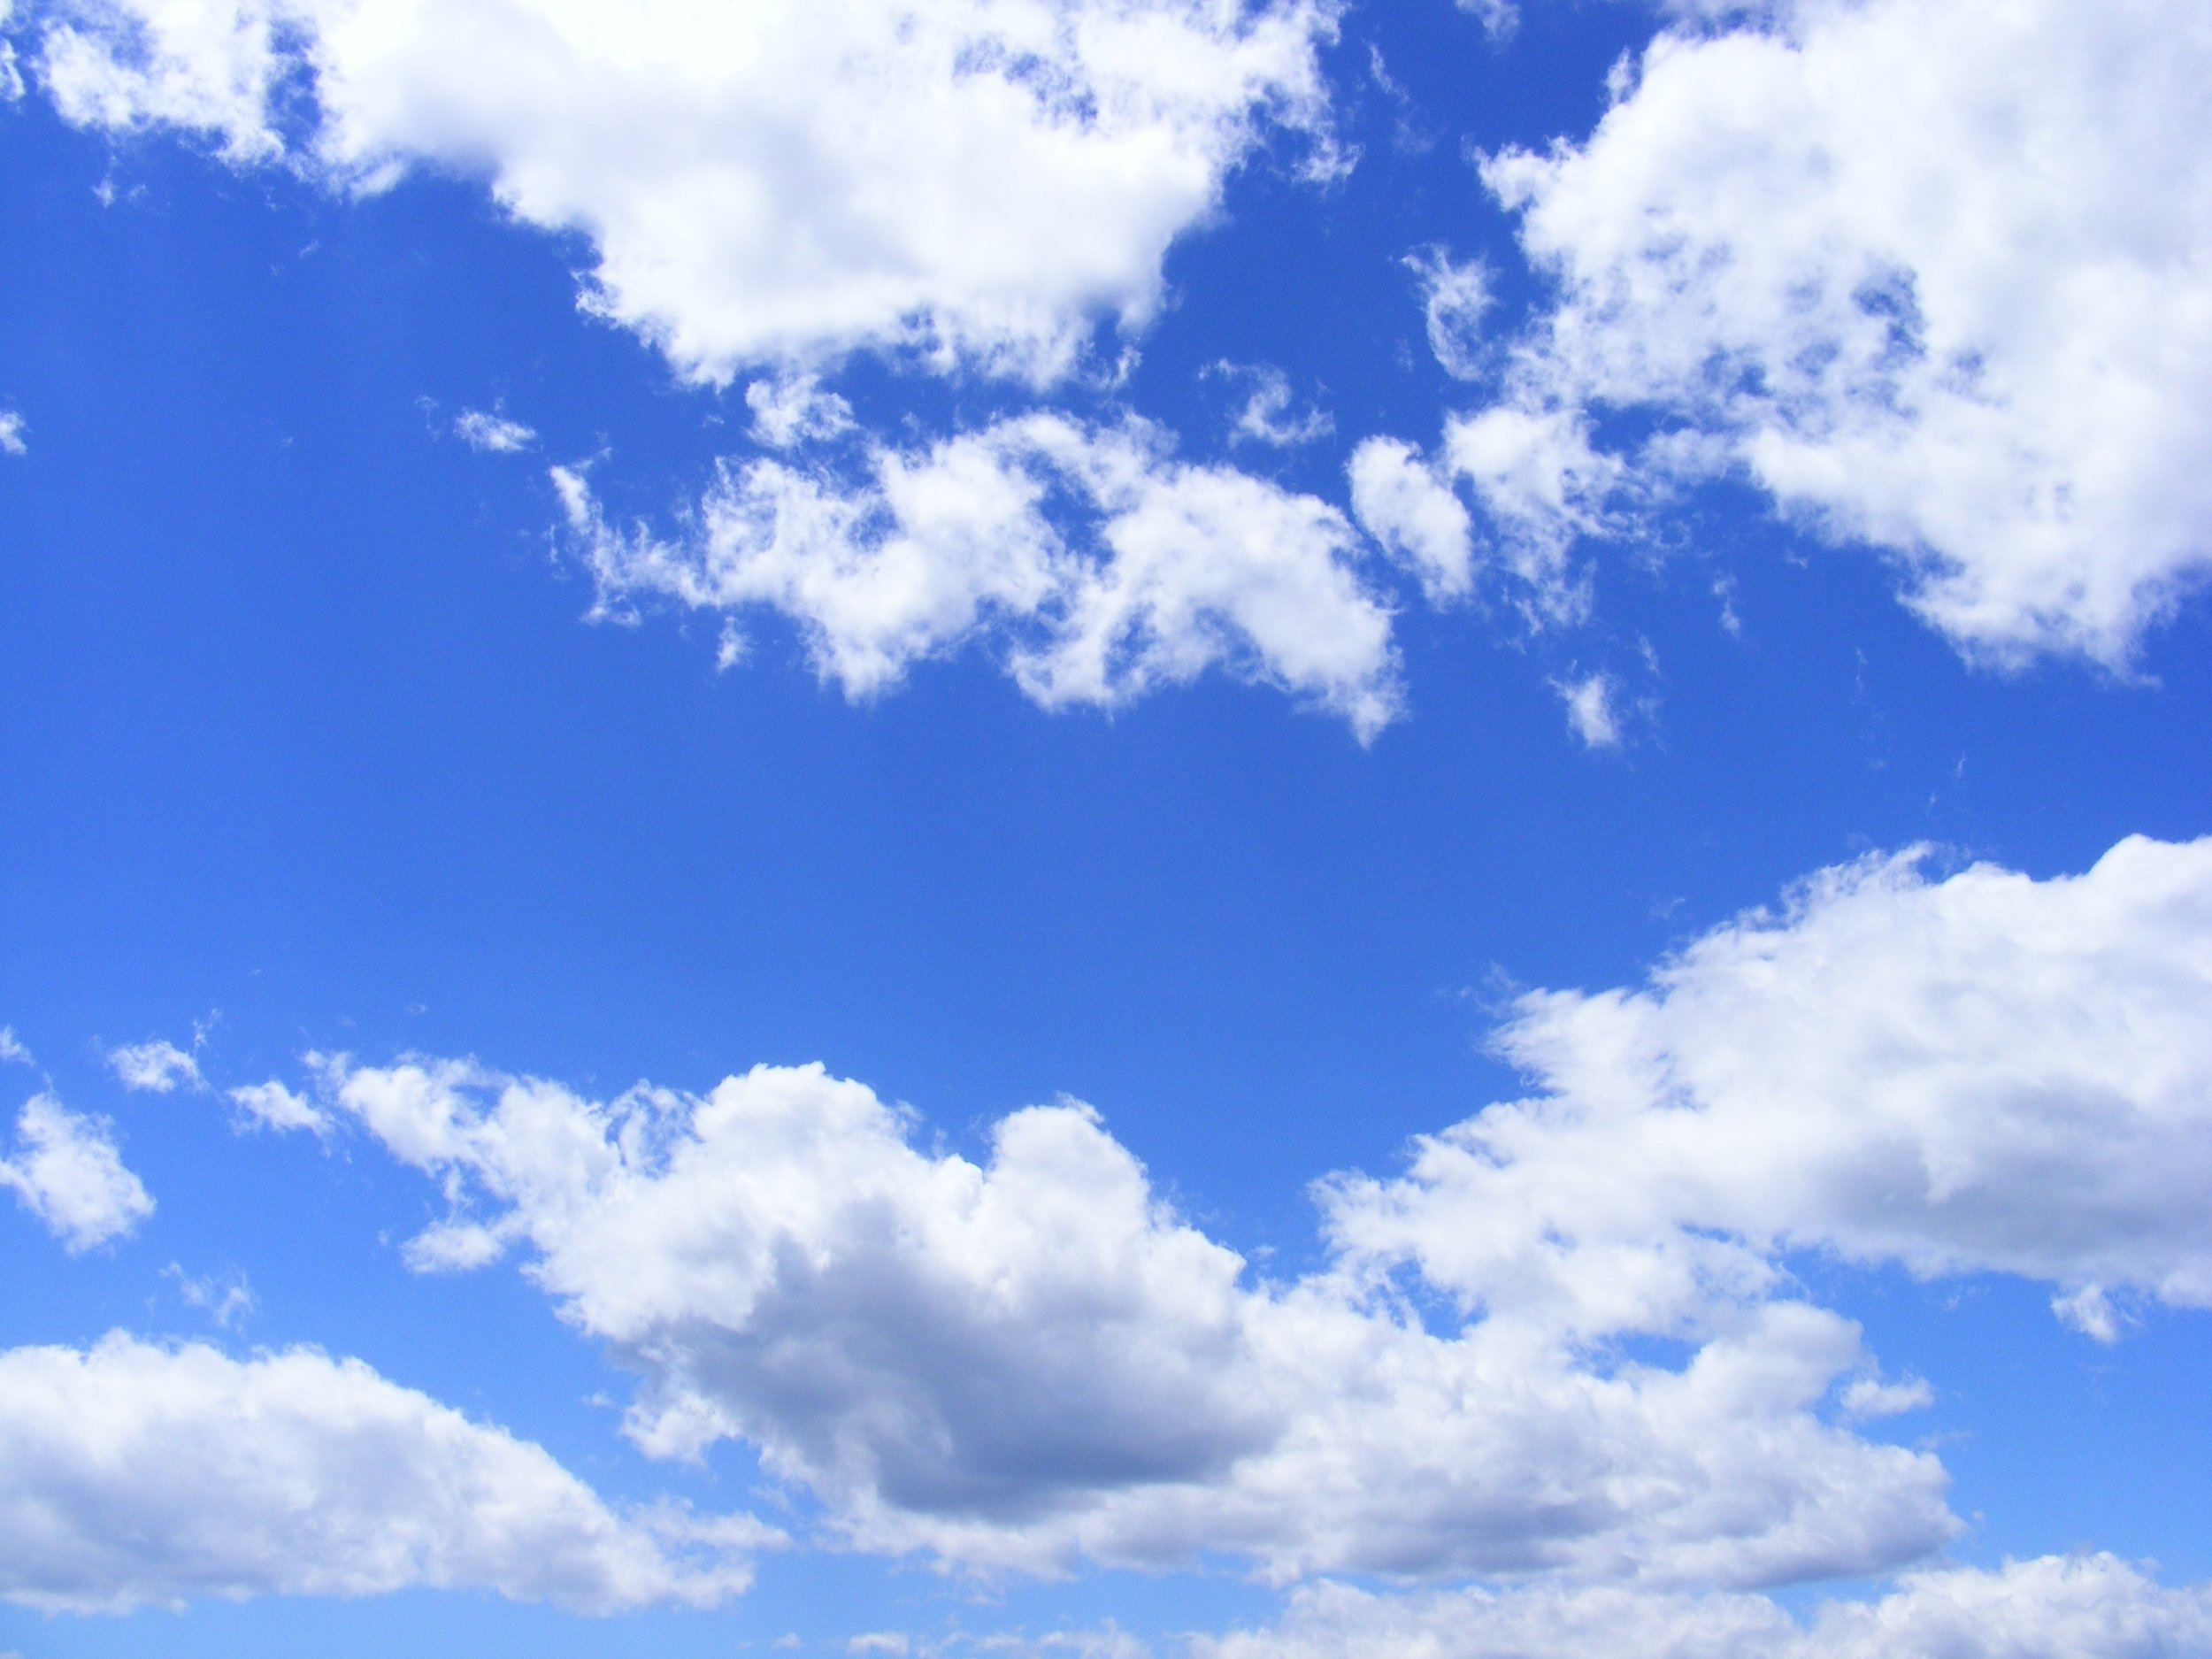 blue-clouds-day-53594.jpg